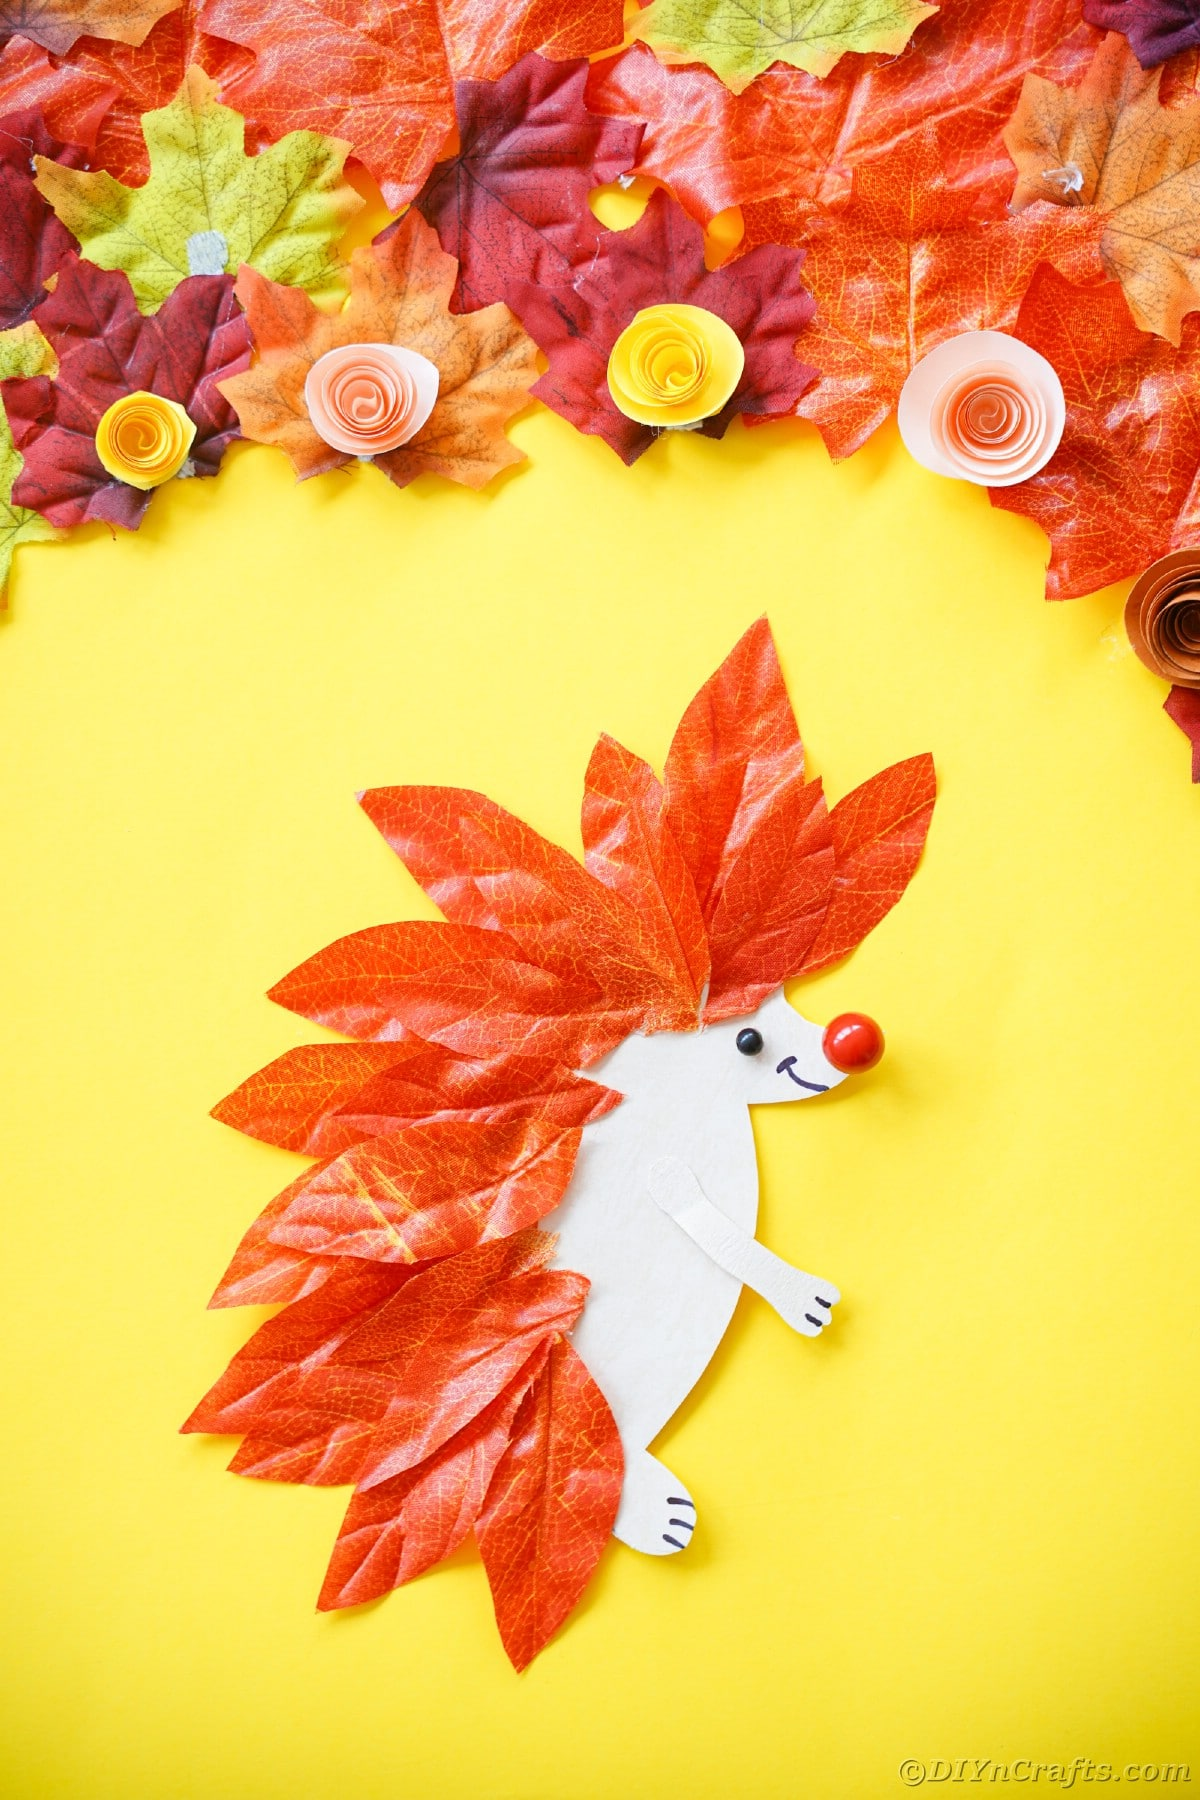 Hedgehog made of paper and fake leaves laying on yellow surface